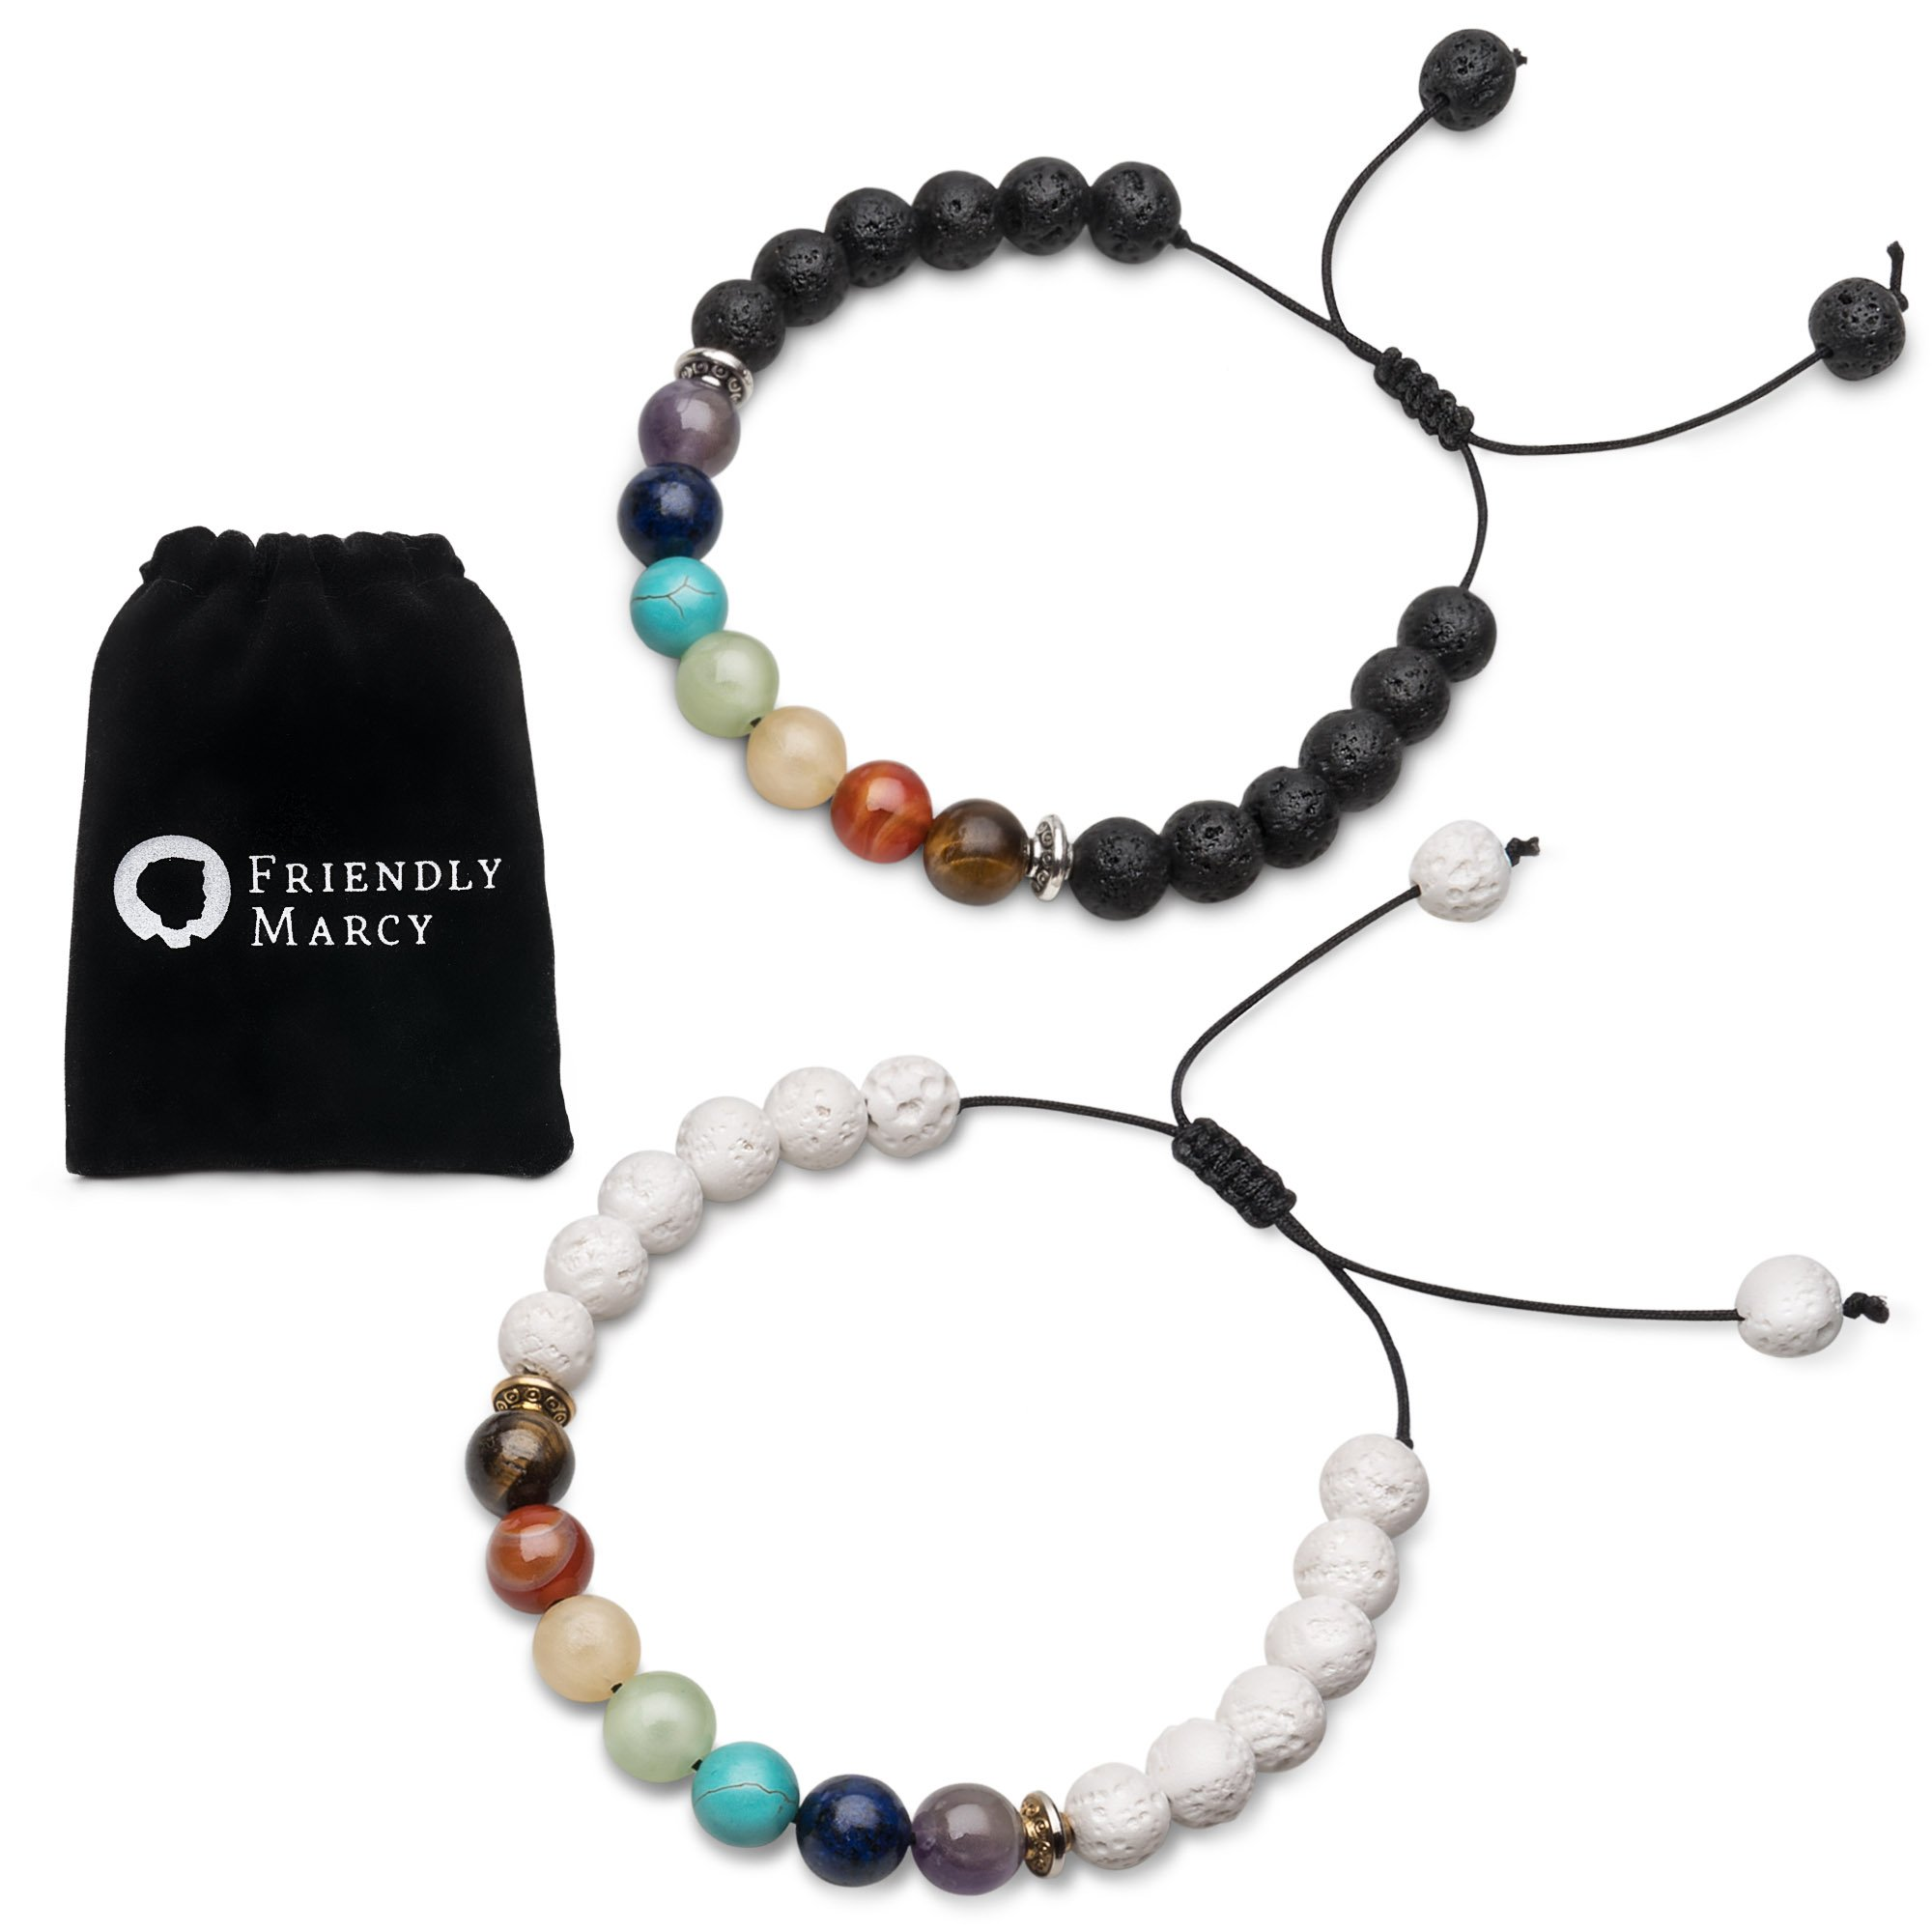 Chakra Bracelets-Natural Semi Precious Gemstones-Essential Oil Diffuser Lava Bracelets-Also Suitable as Couples Best Friend Distance Bracelets-Rock Stone Beads-Anxiety Relief Healing Protection Energy by Friendly Marcy